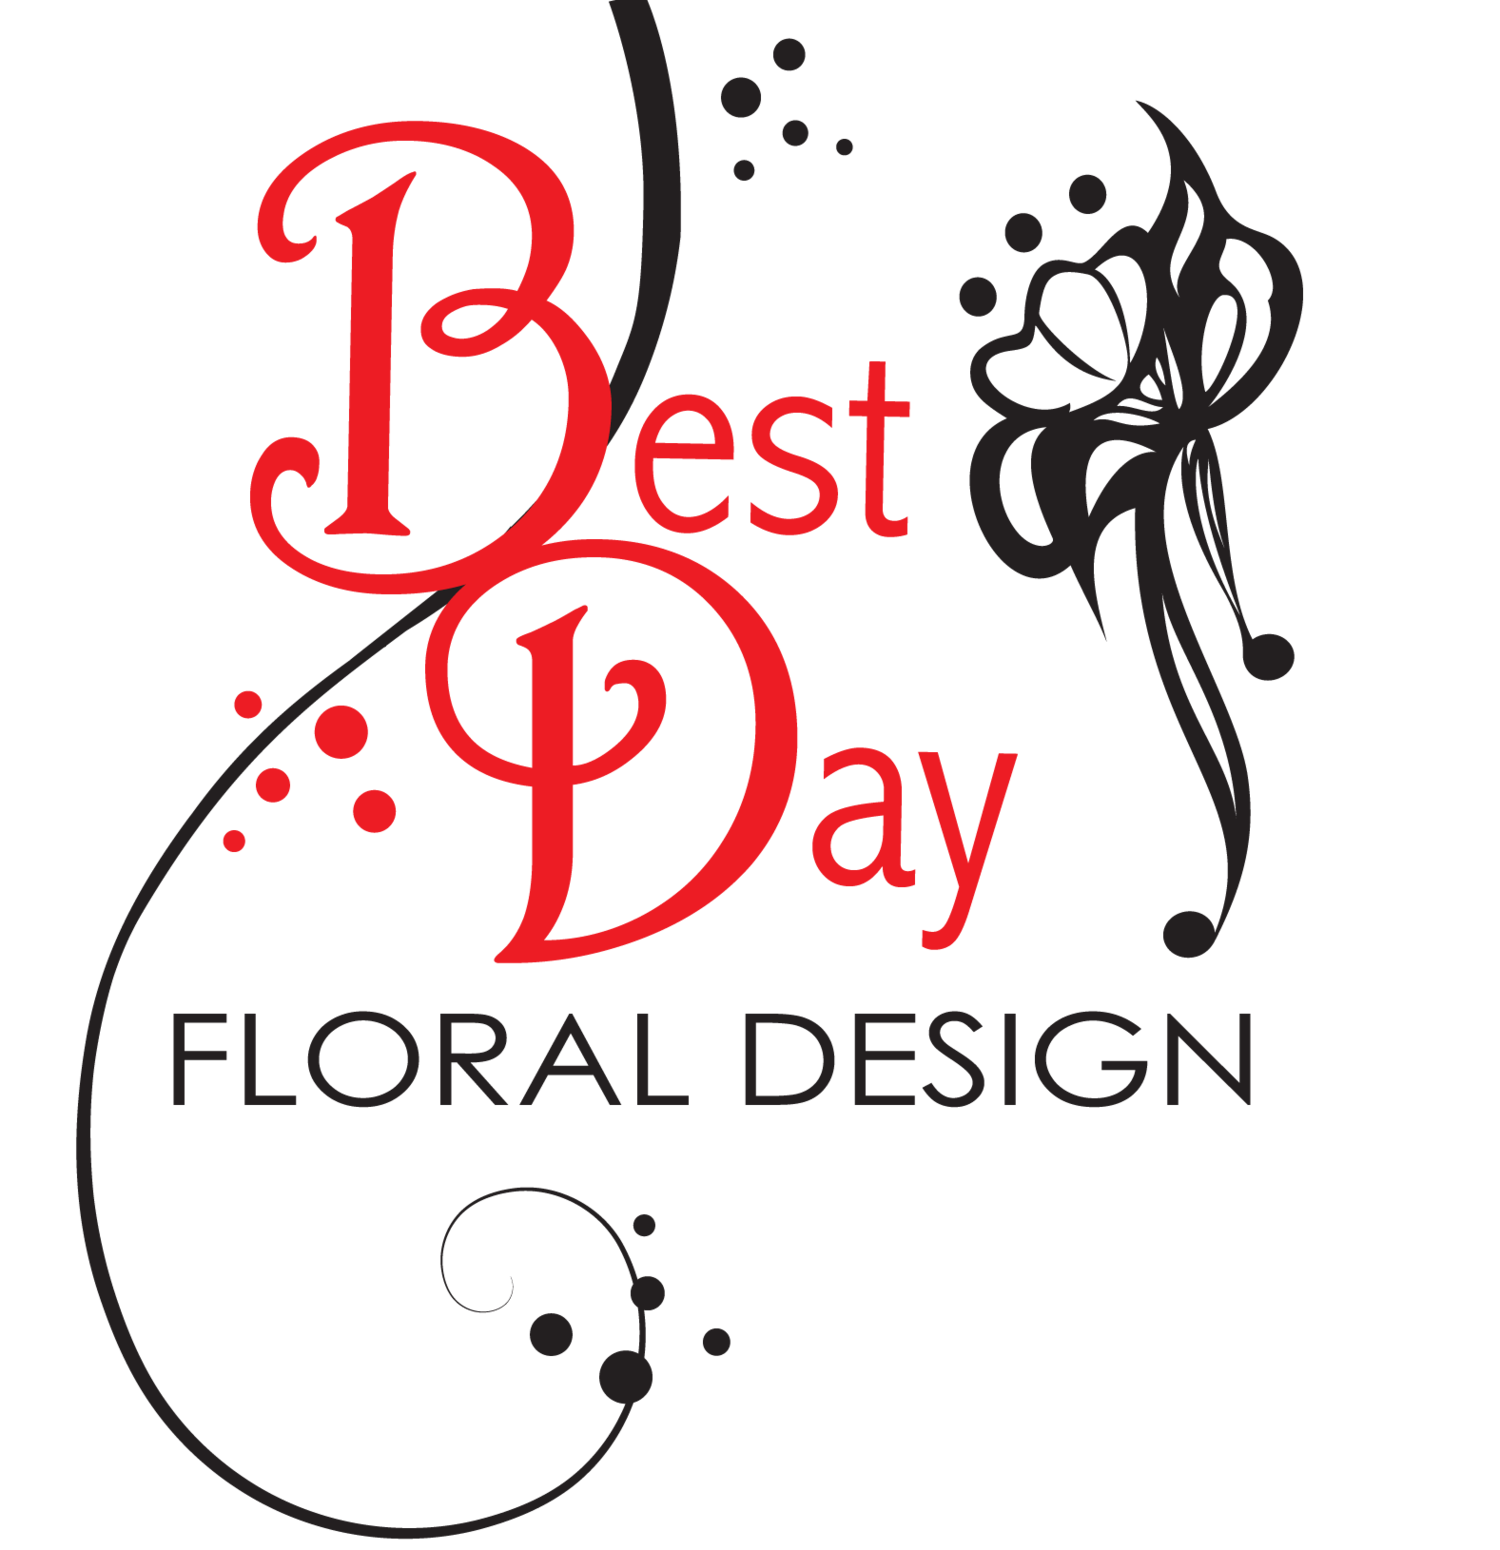 Best Day Floral Design